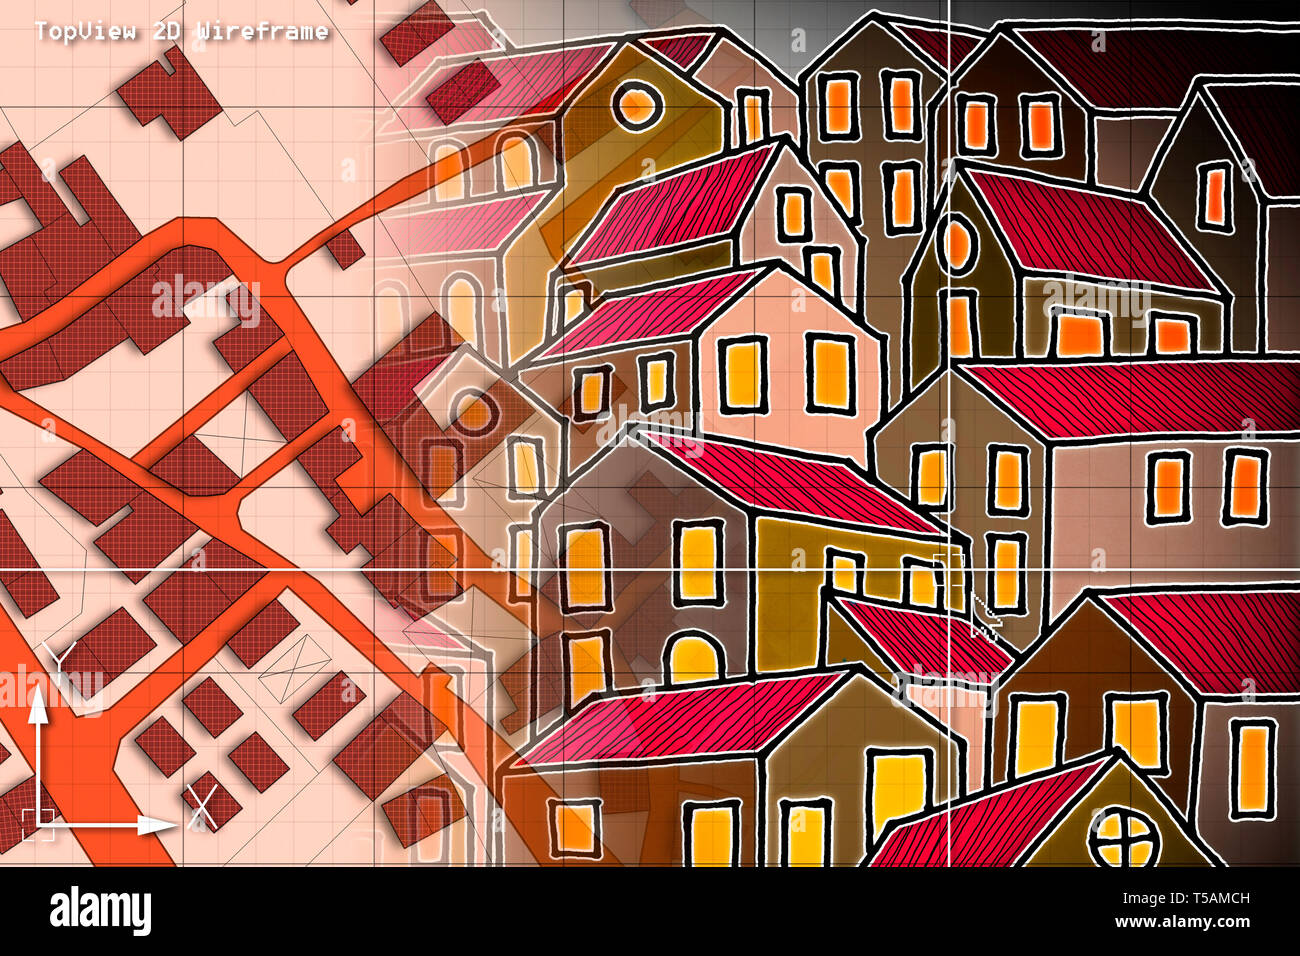 Computer Aided Design High Resolution Stock Photography And Images Alamy